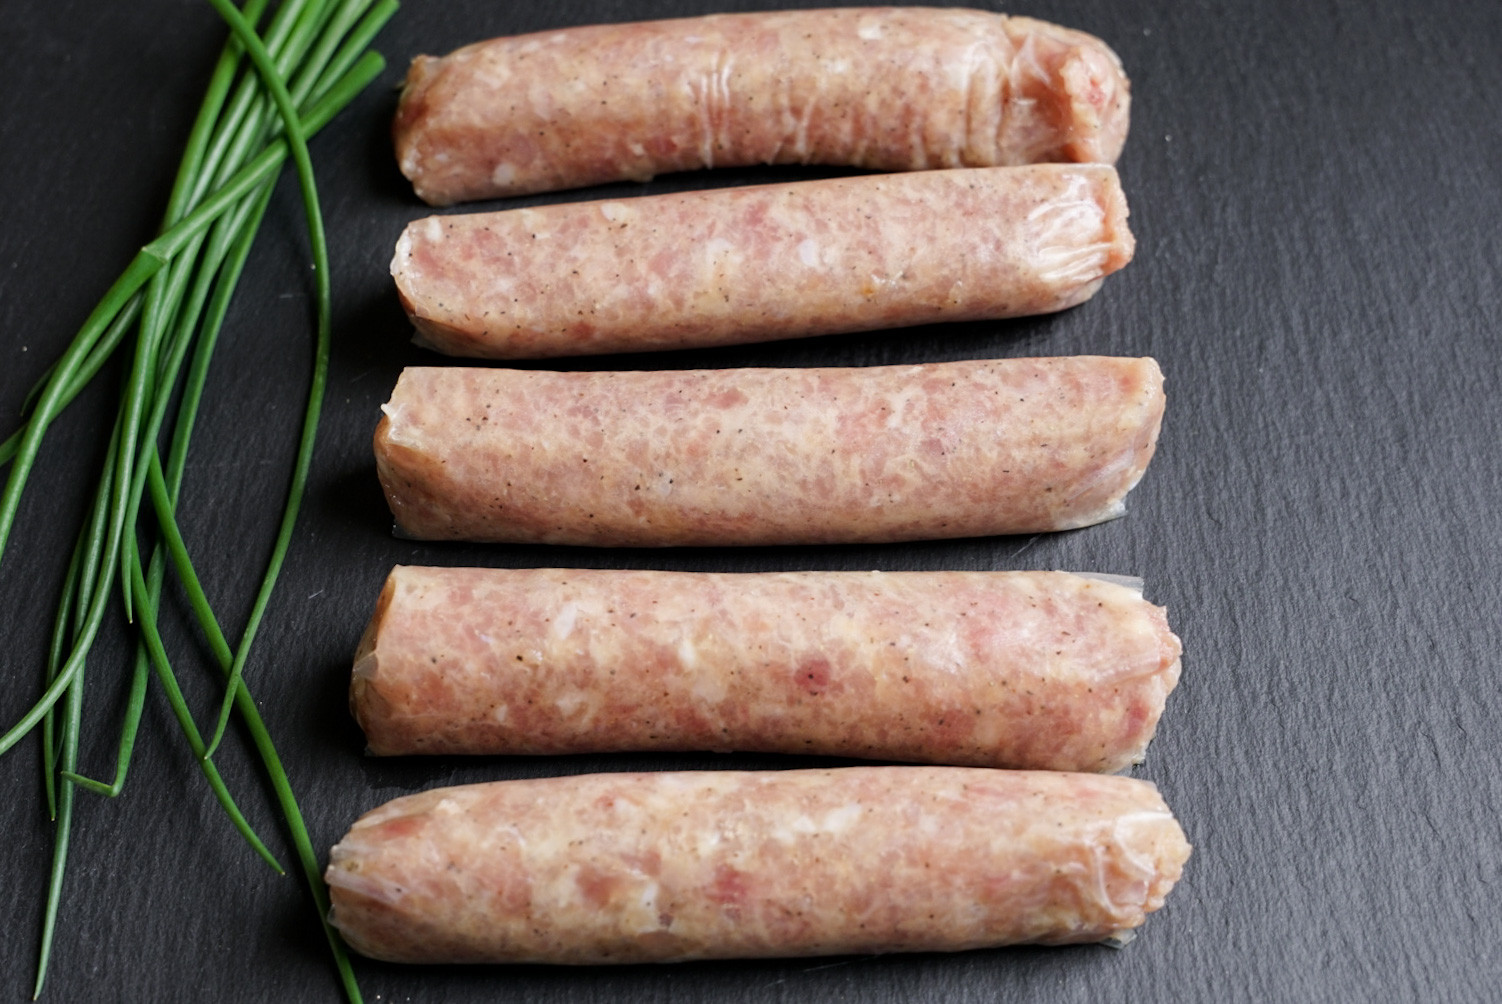 Turkey Sausage Links